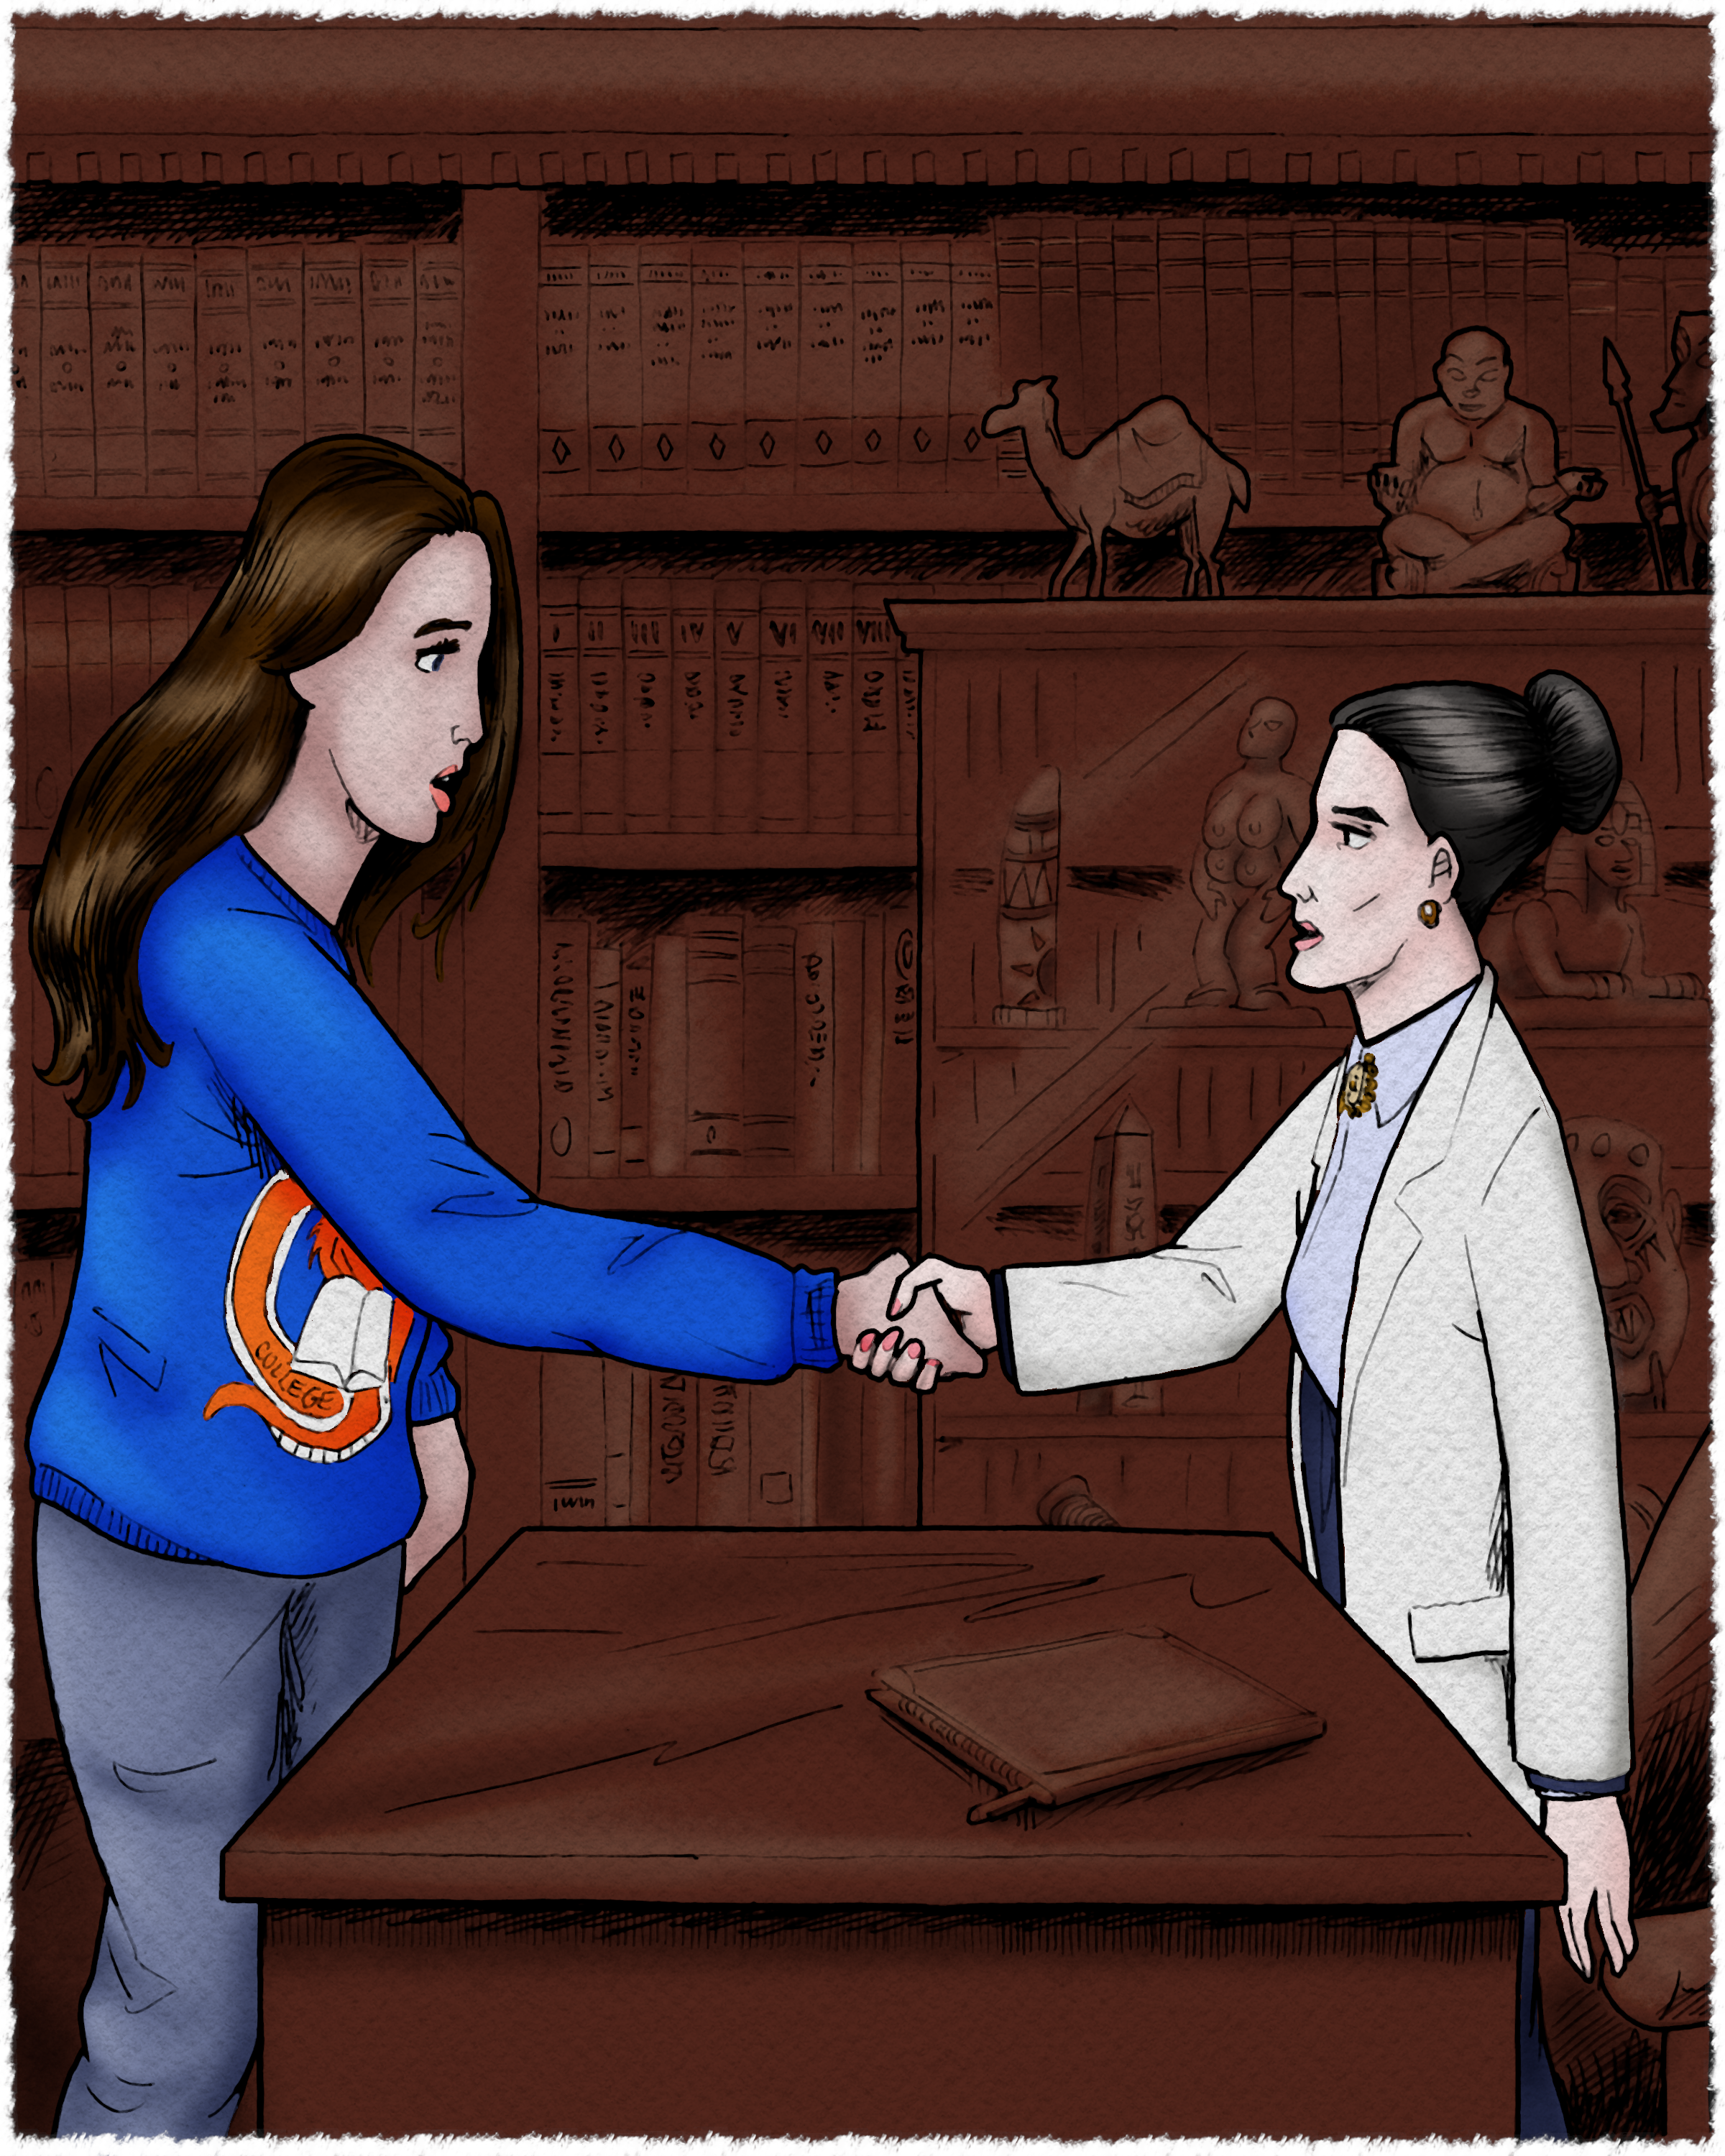 Bryony meets her new therapist, Dr. Gneiss.